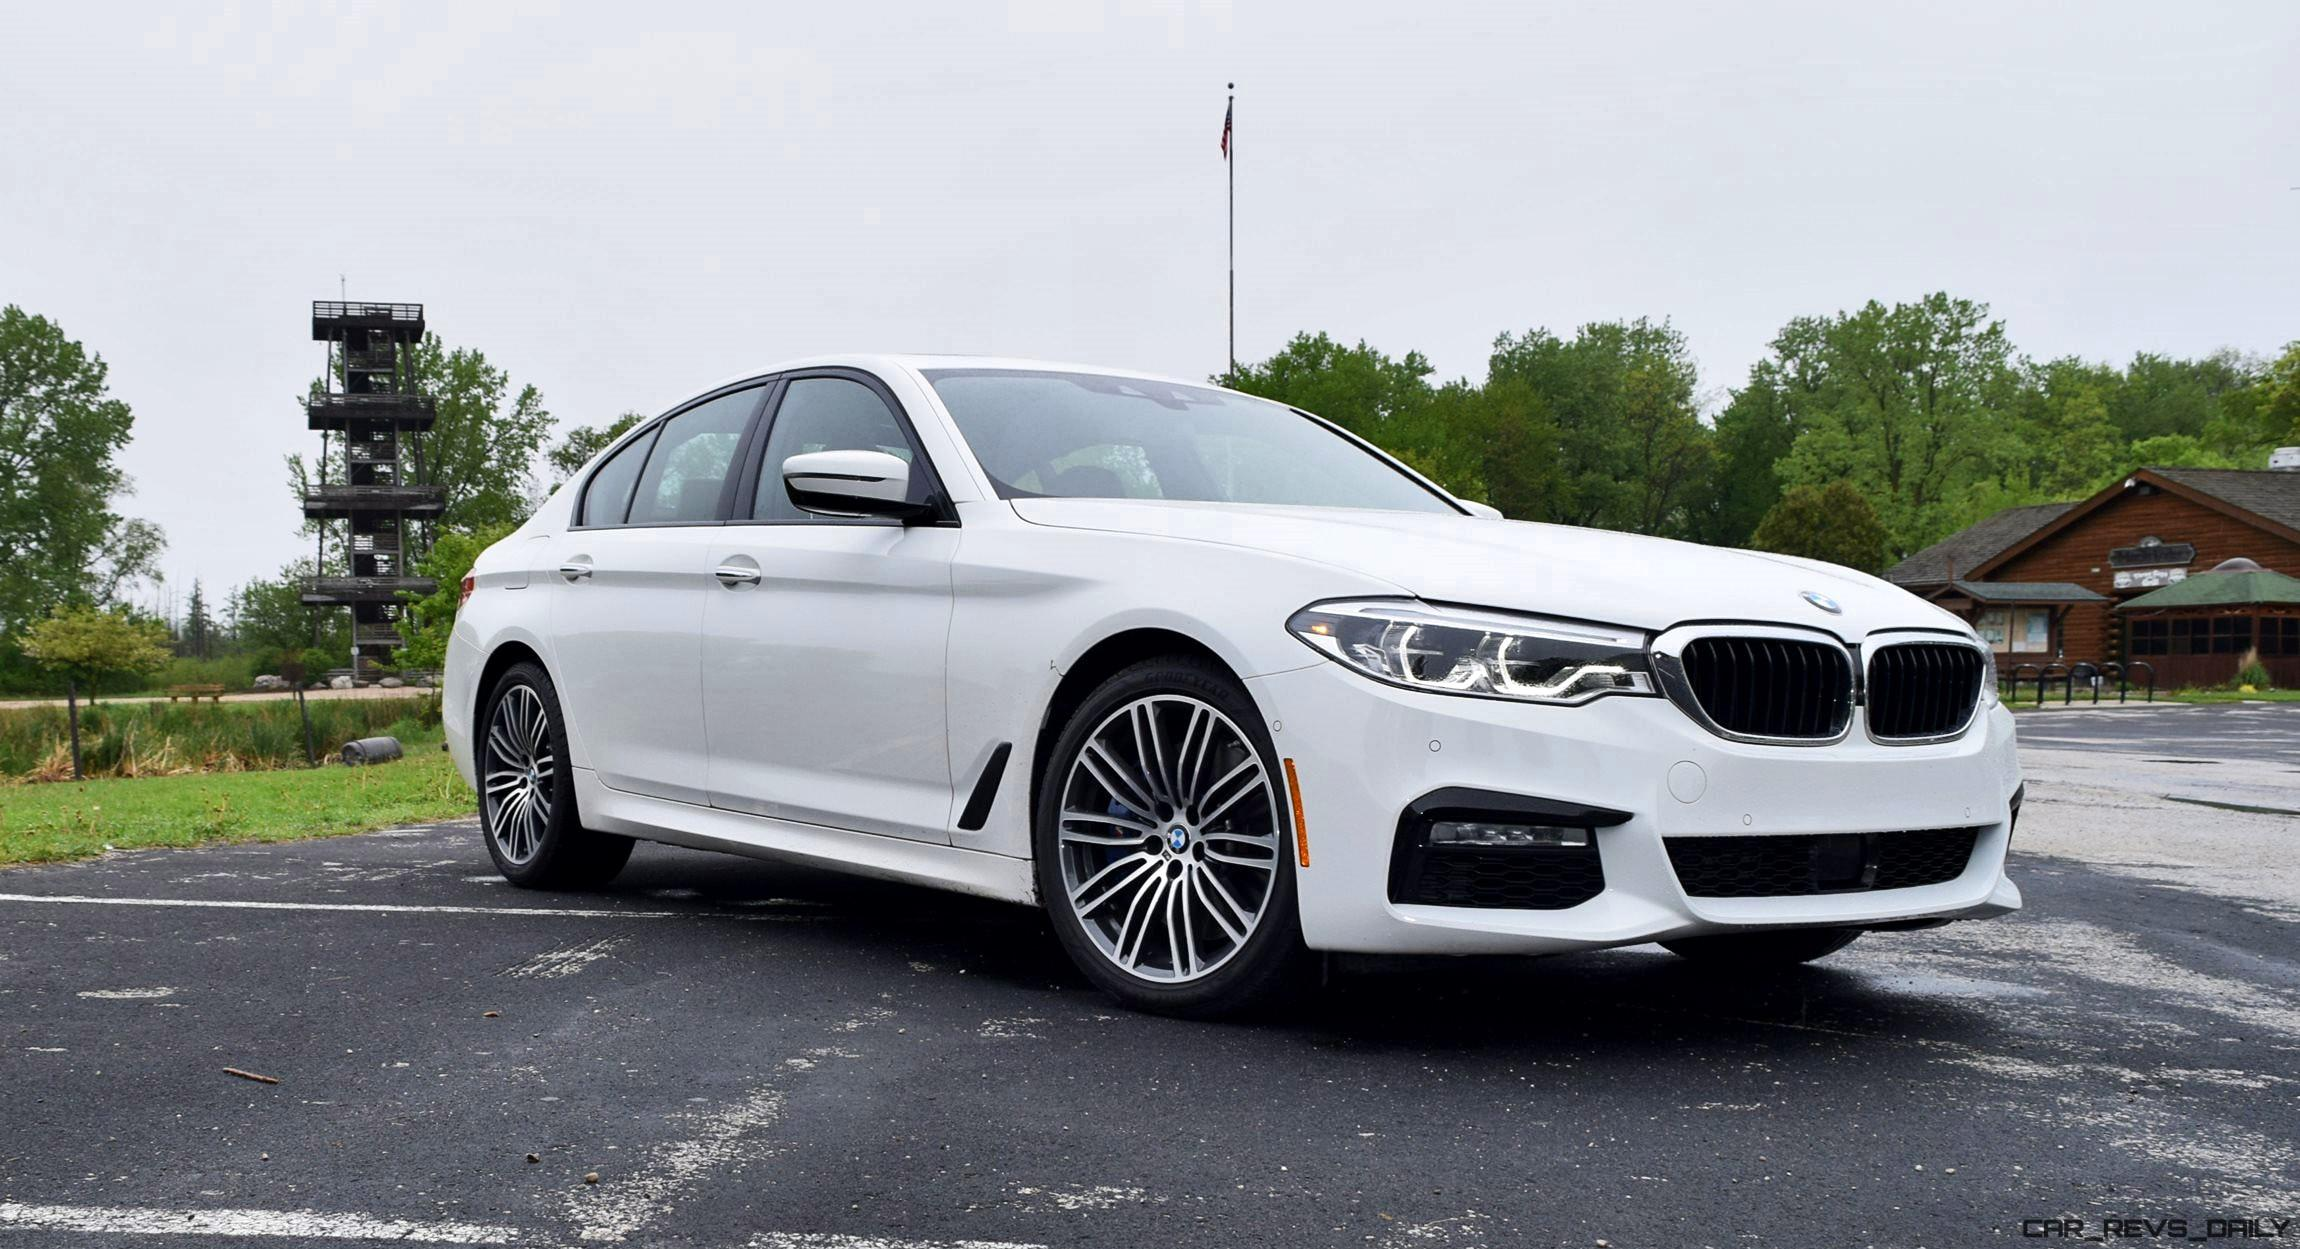 used bmw 540i for sale with Bmw M Sport on G30 5 Series Vs F10 5 Series Photo  parison further Showthread furthermore Bmw M Sport furthermore 182001756379 furthermore Car68457.